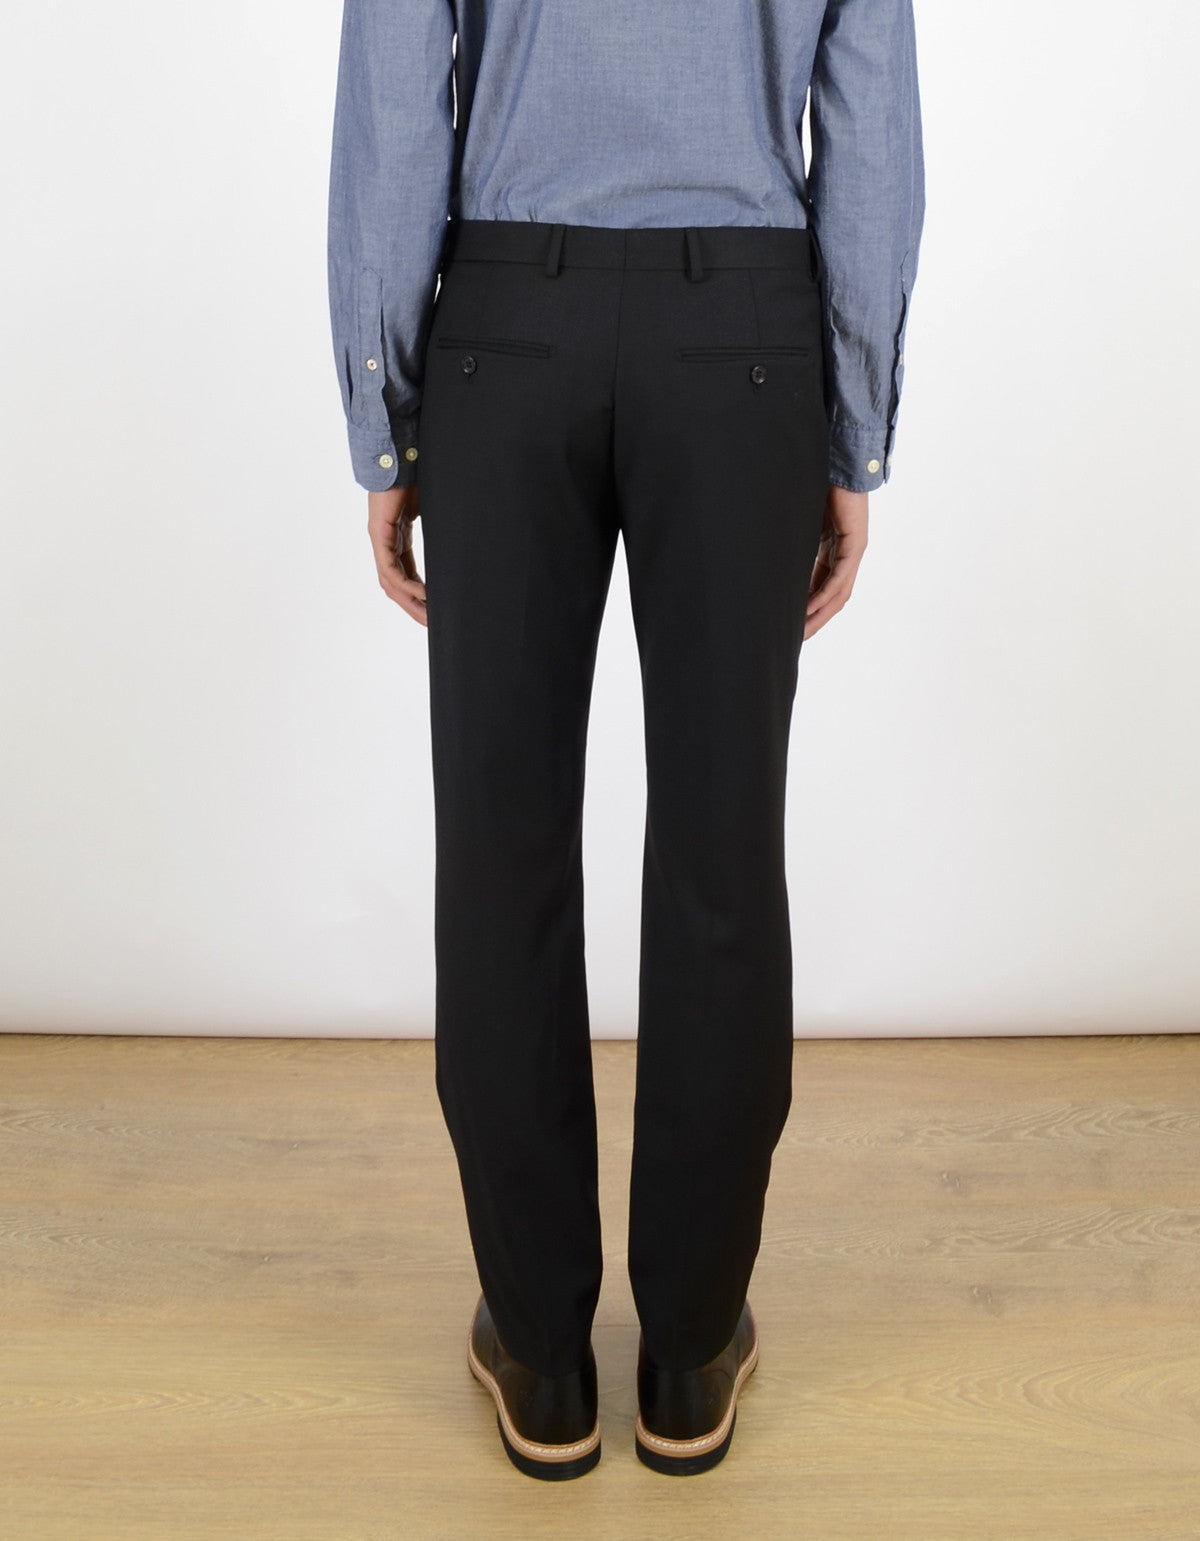 Selected Homme One Mylo Trouser Black - Still Life - 2